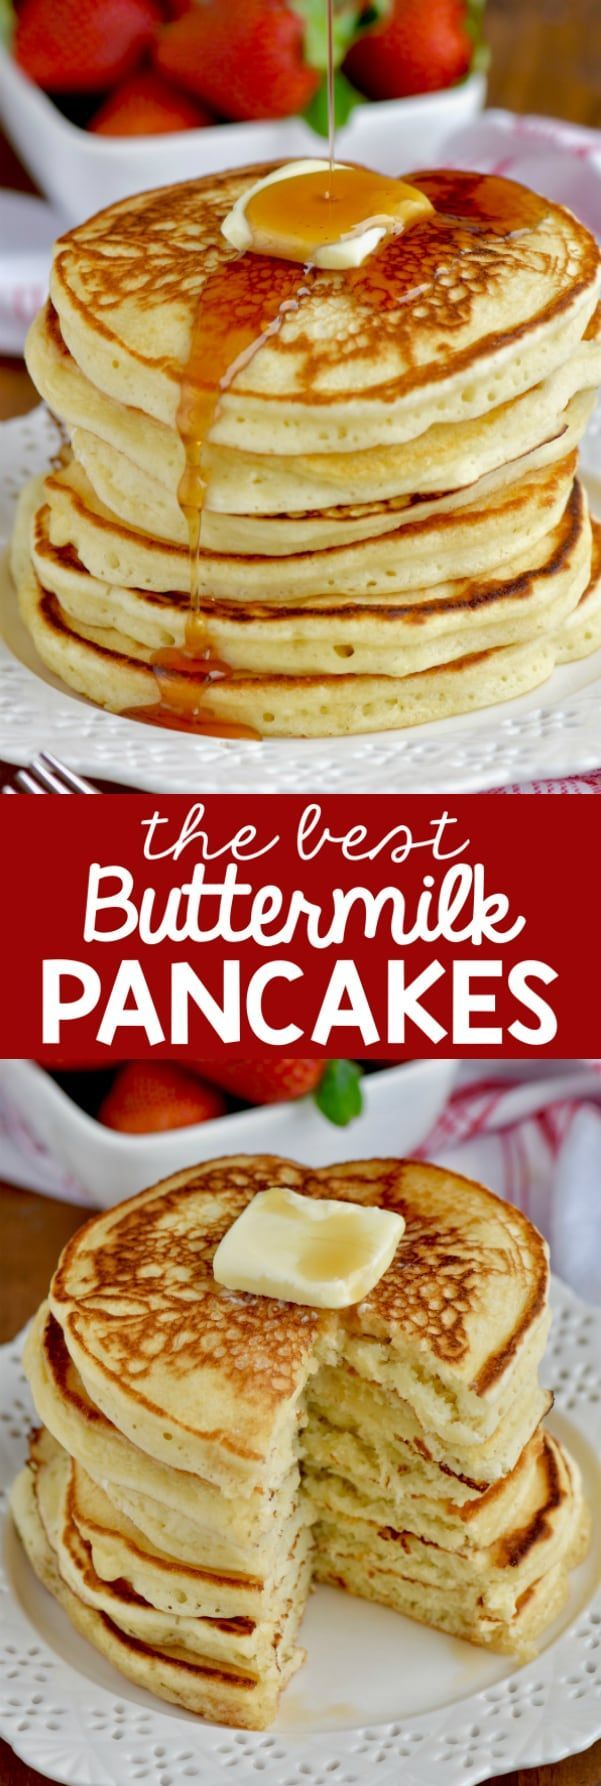 These Are The Best Buttermilk Pancakes This Is Such A Fluffy Buttermilk Pancake Fluffy Buttermilk Pancake Recipe Best Pancake Recipe Pancake Recipe Buttermilk